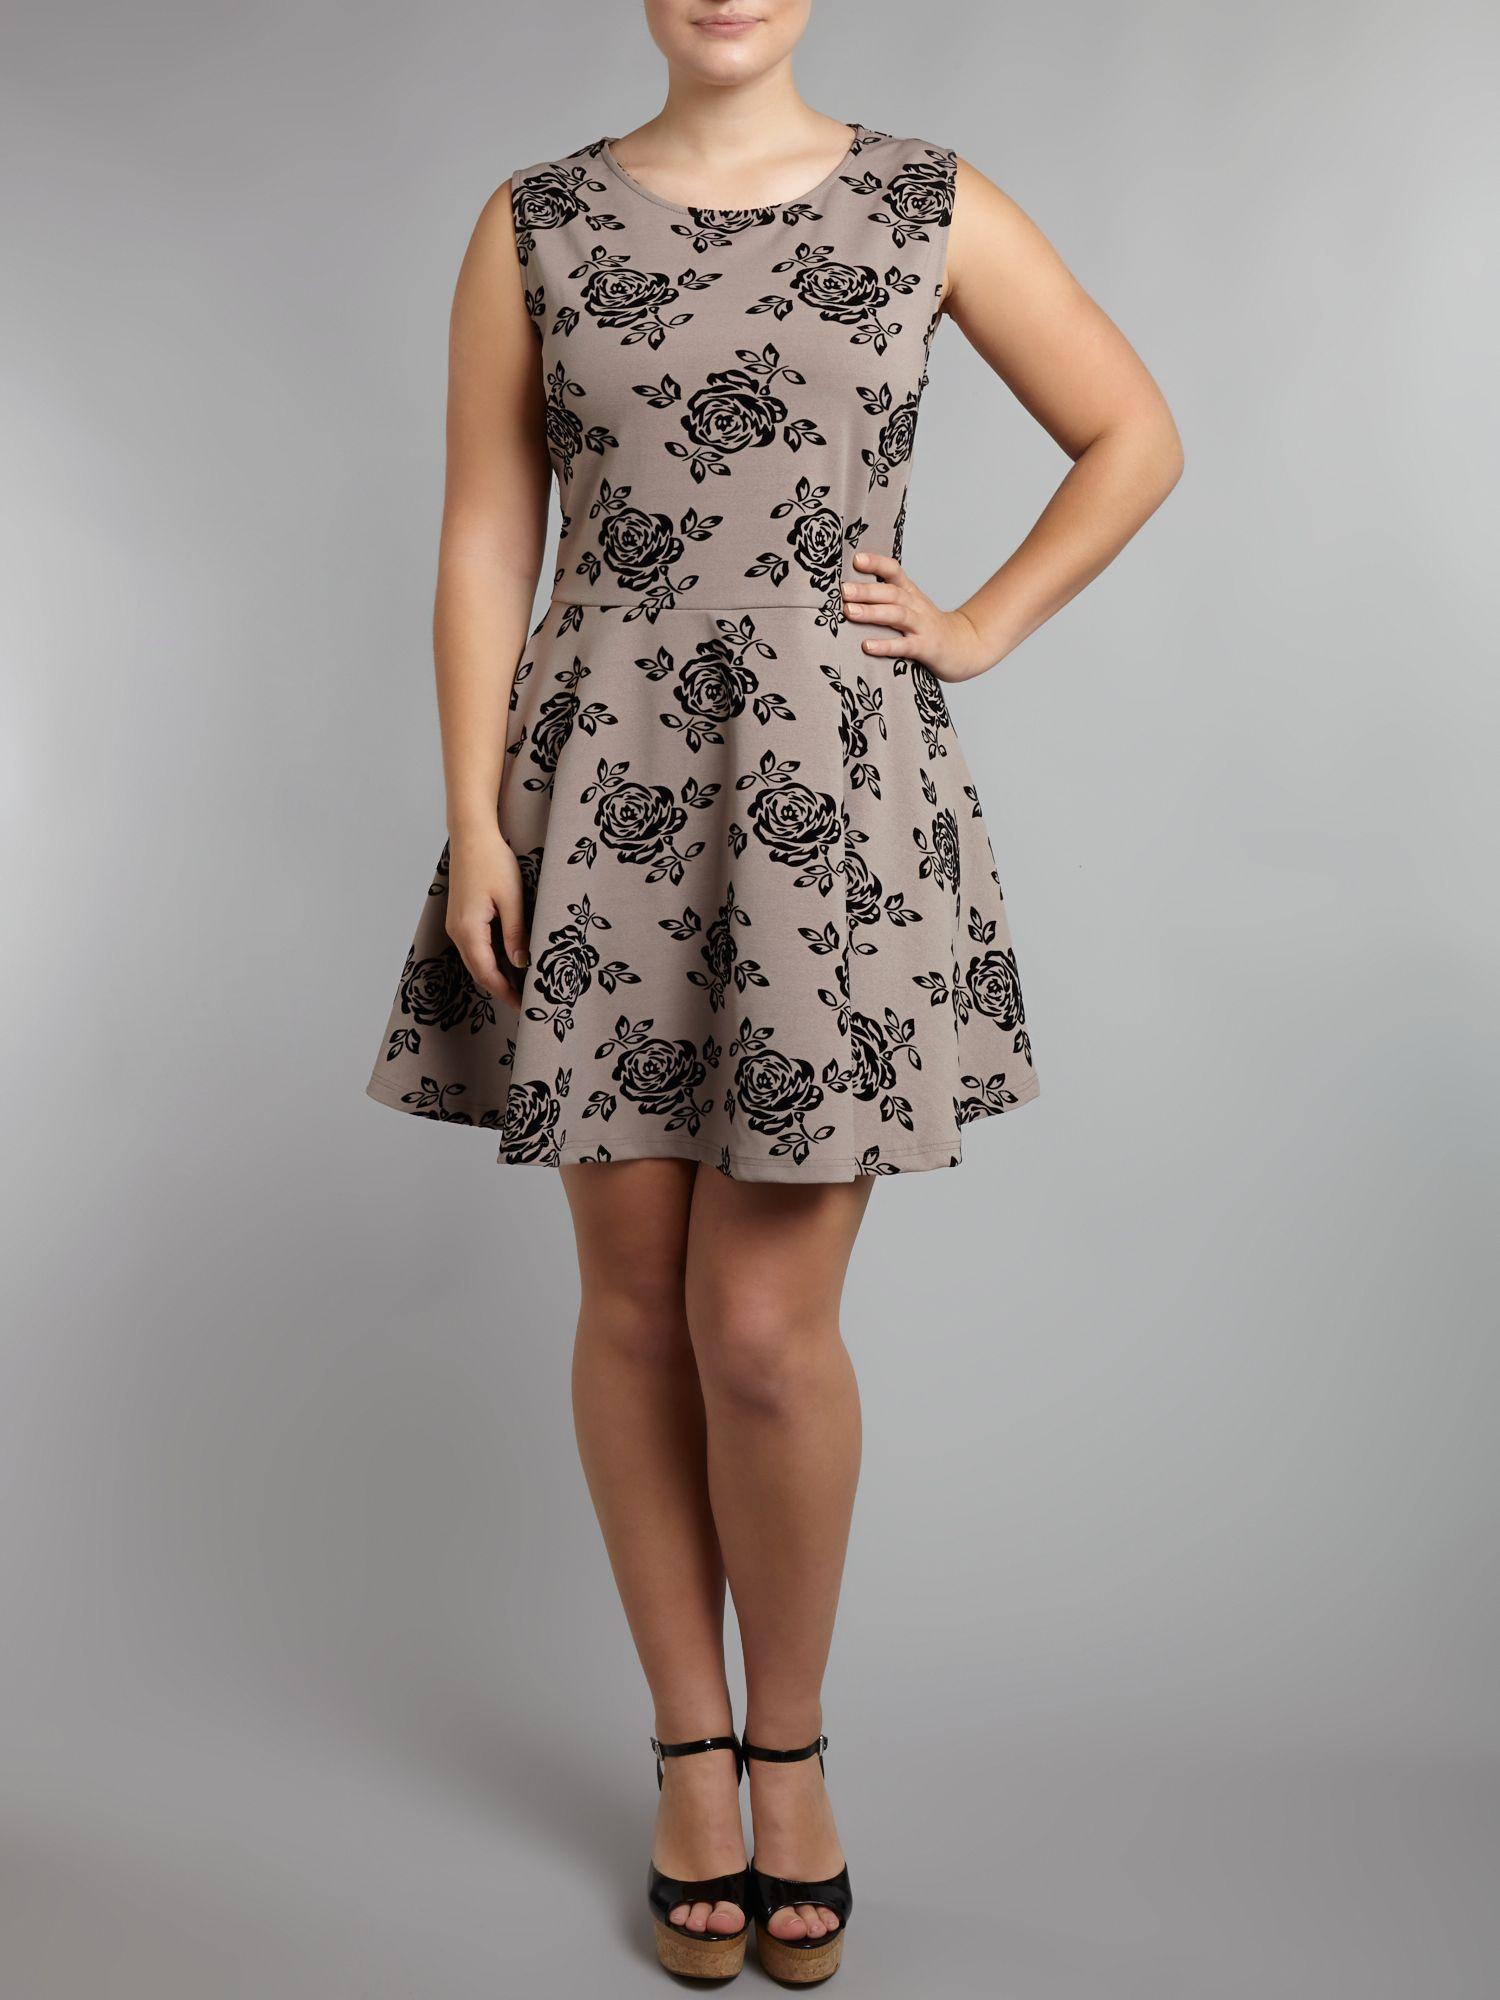 Rose flock skater dress